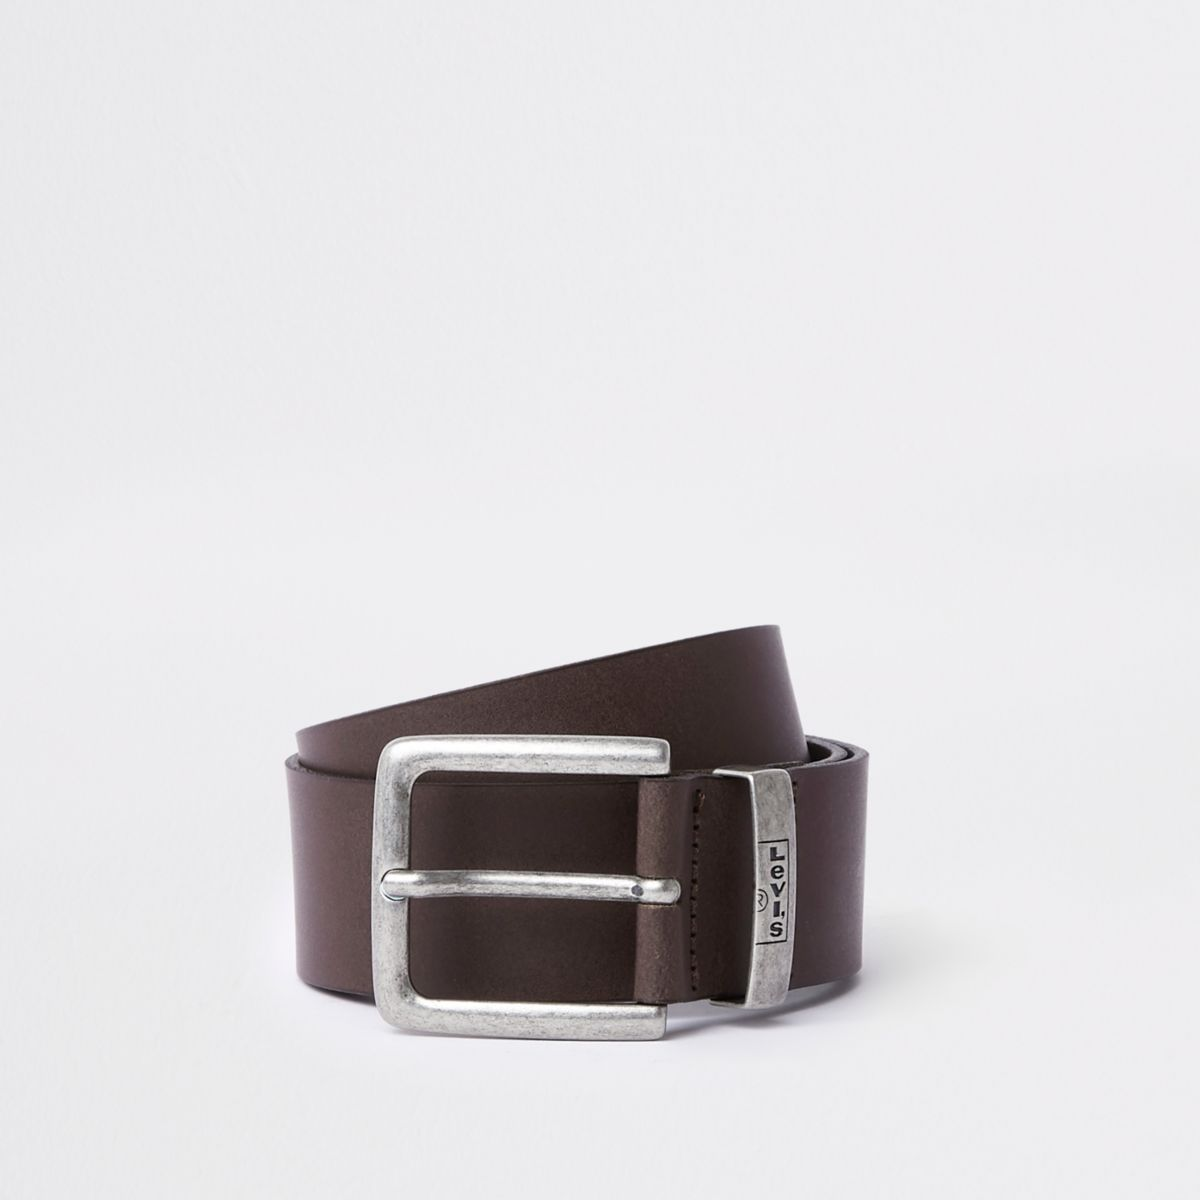 Levi's brown branded leather buckle belt